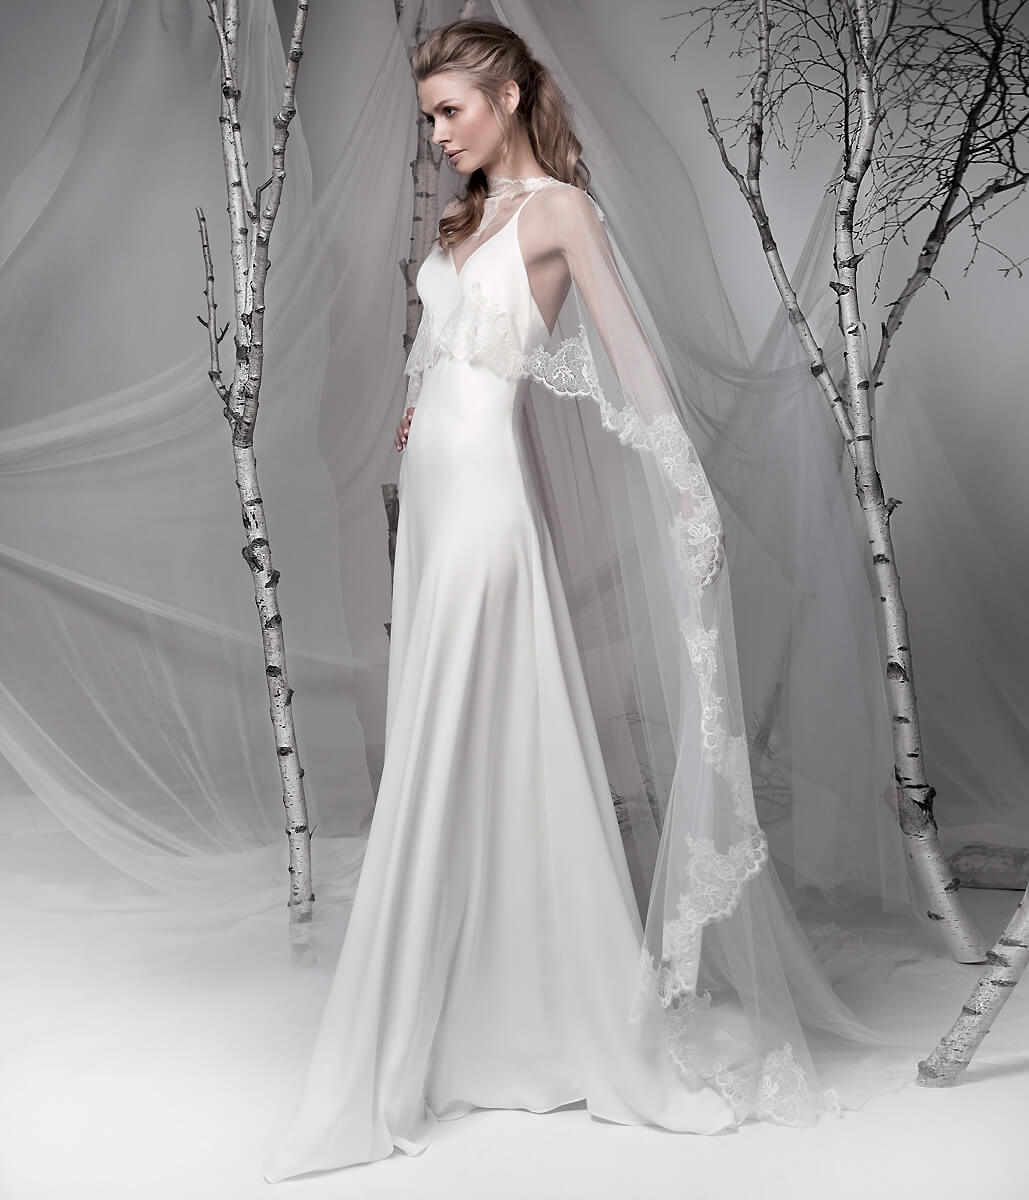 angelika dluzen designer weddingdress collection bridal collection couture collection